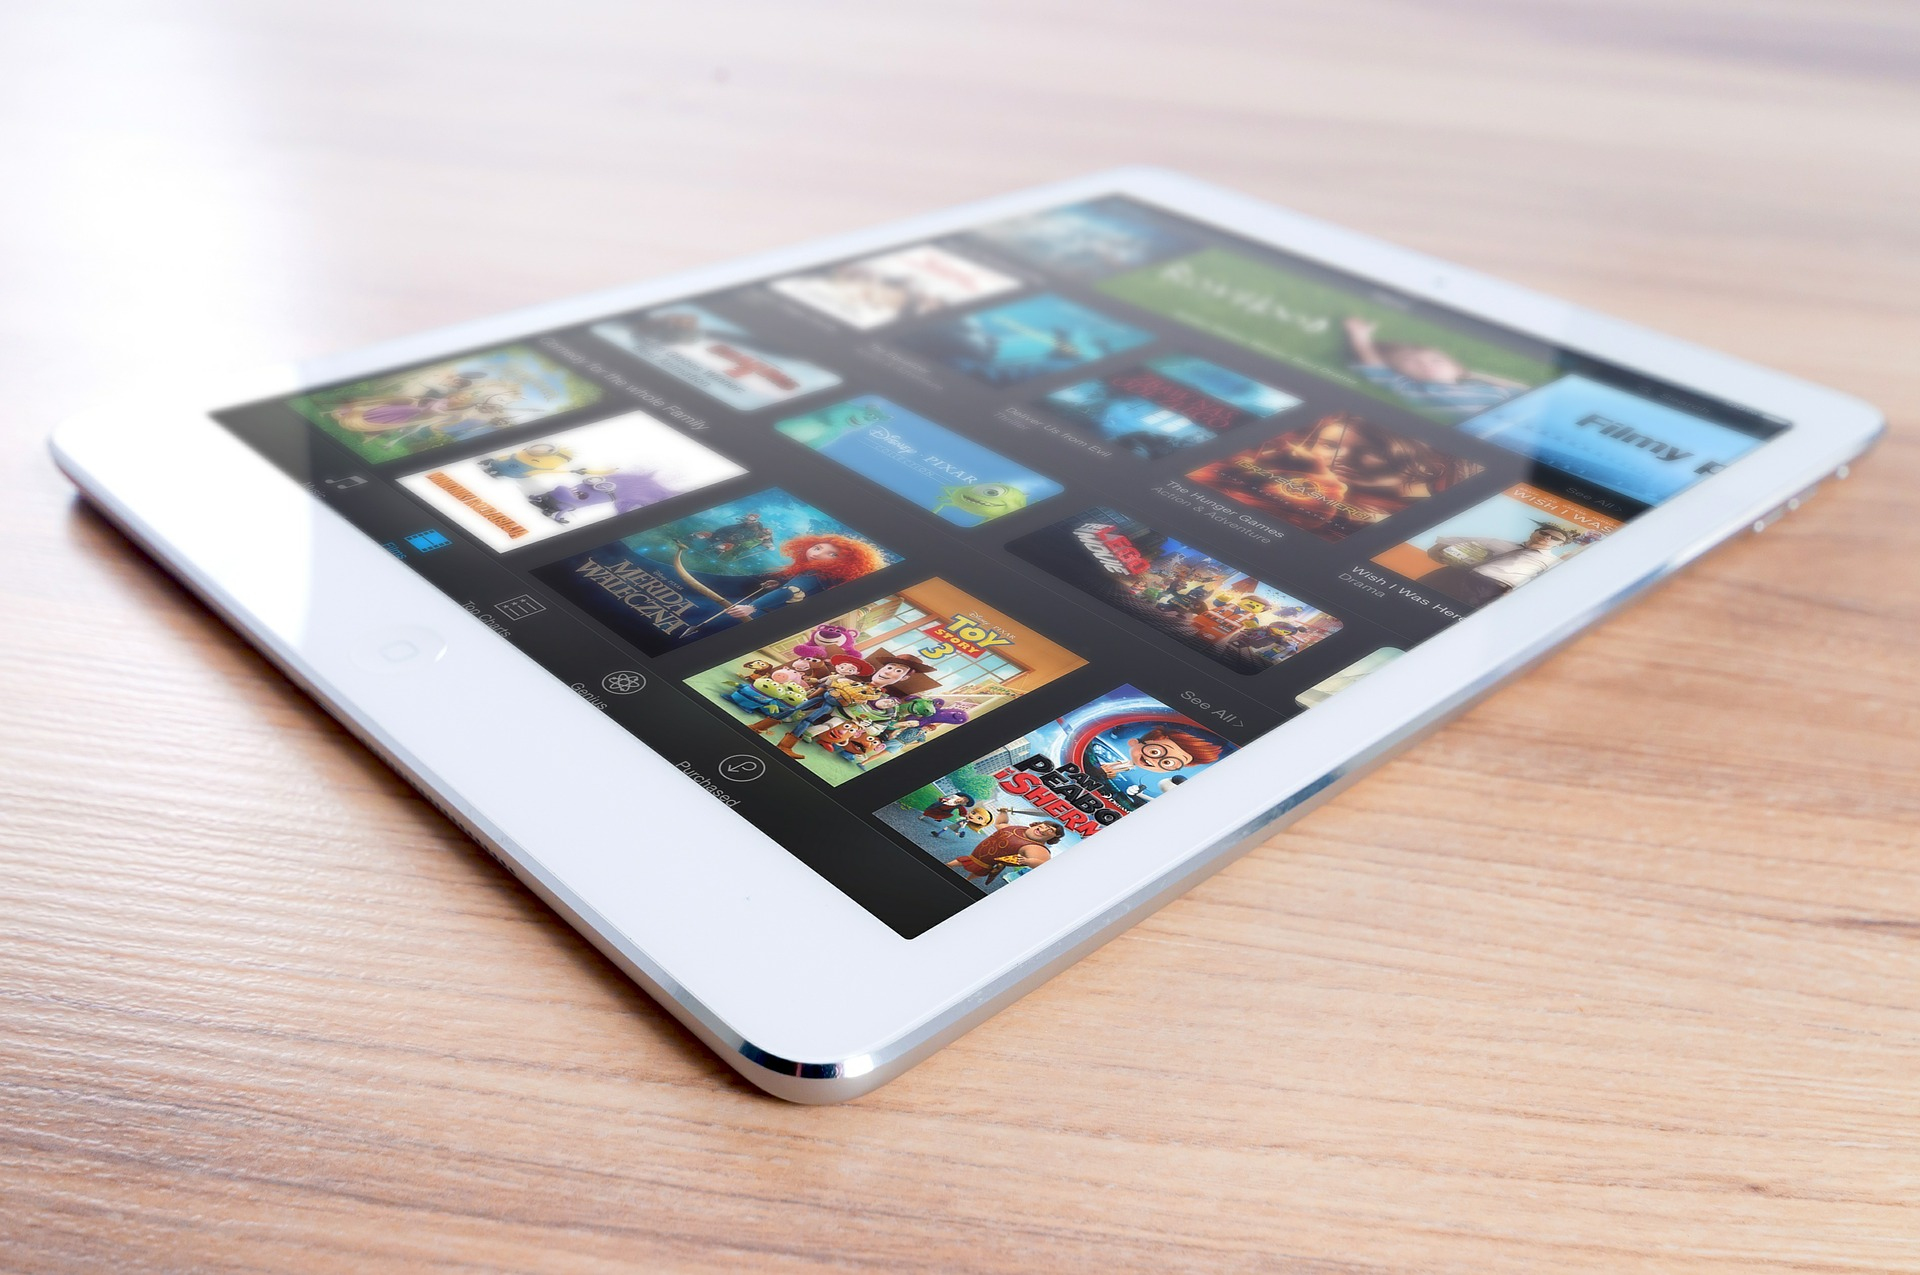 iPad Lending and Training Scheme with Hampshire Libraries